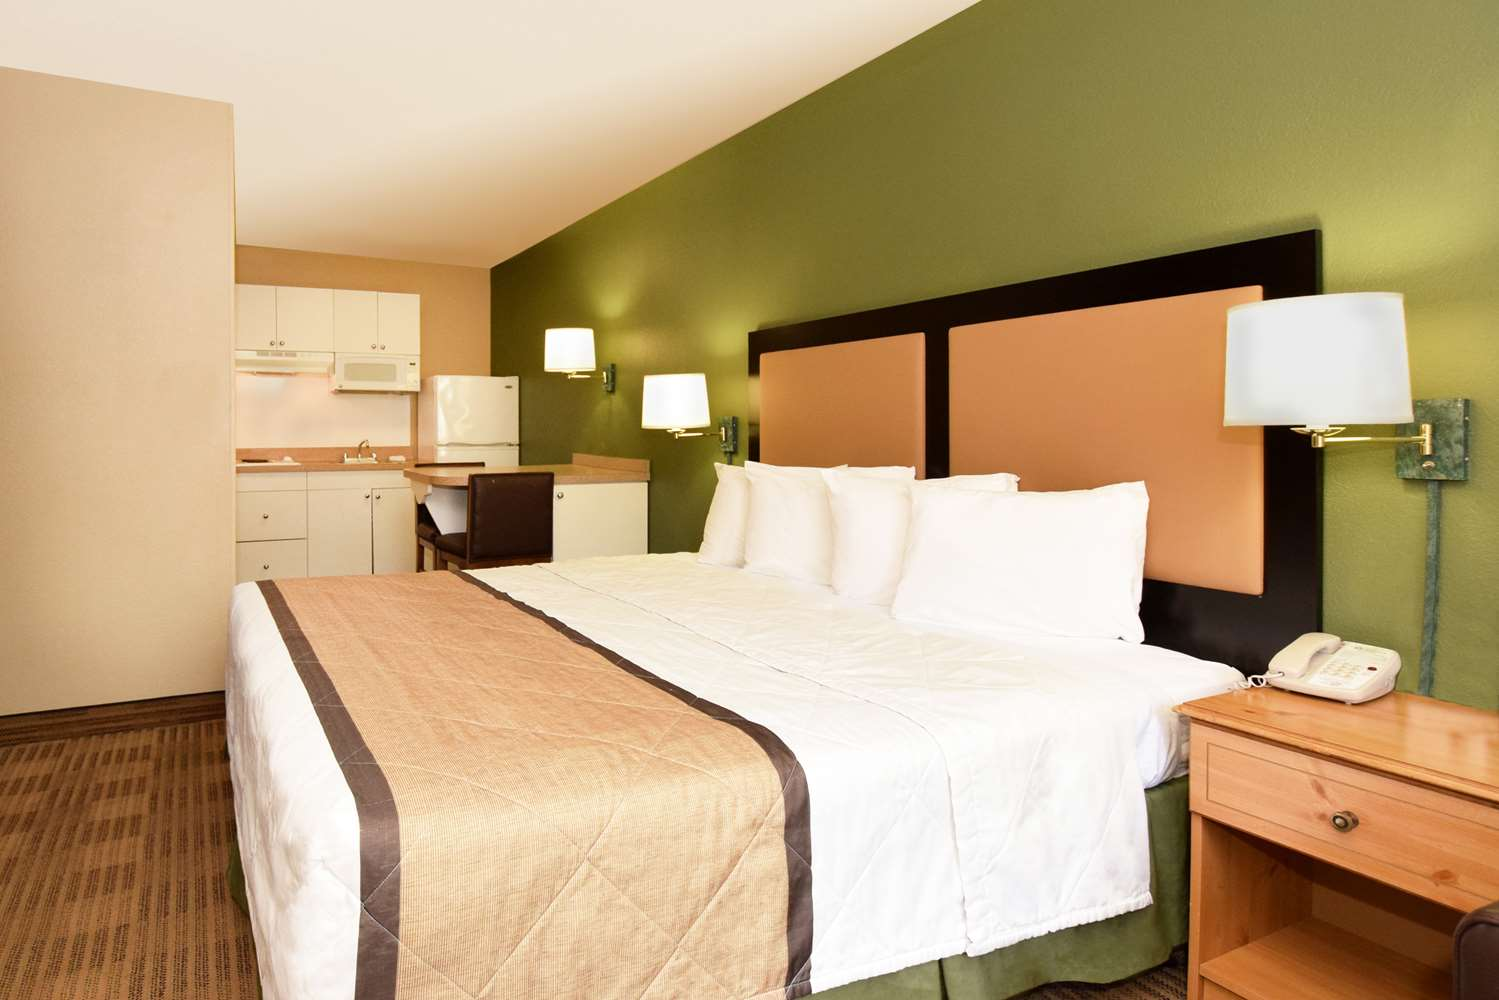 Extended Stay America Hotel Factoria Bellevue Wa See